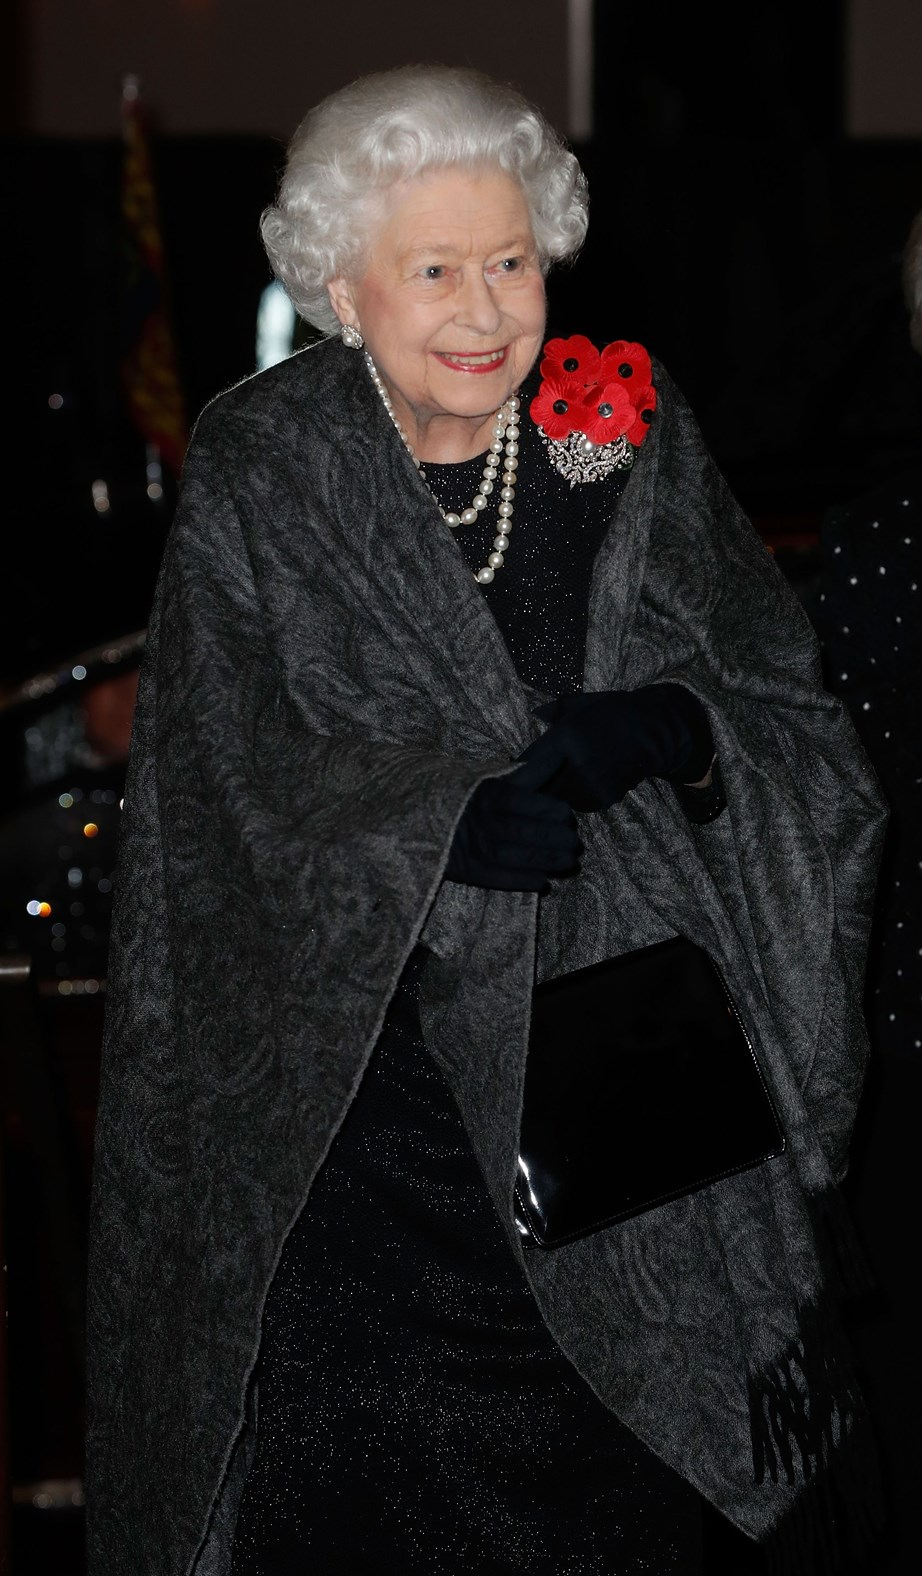 The Queen looked stunning as she made her grand entrance.